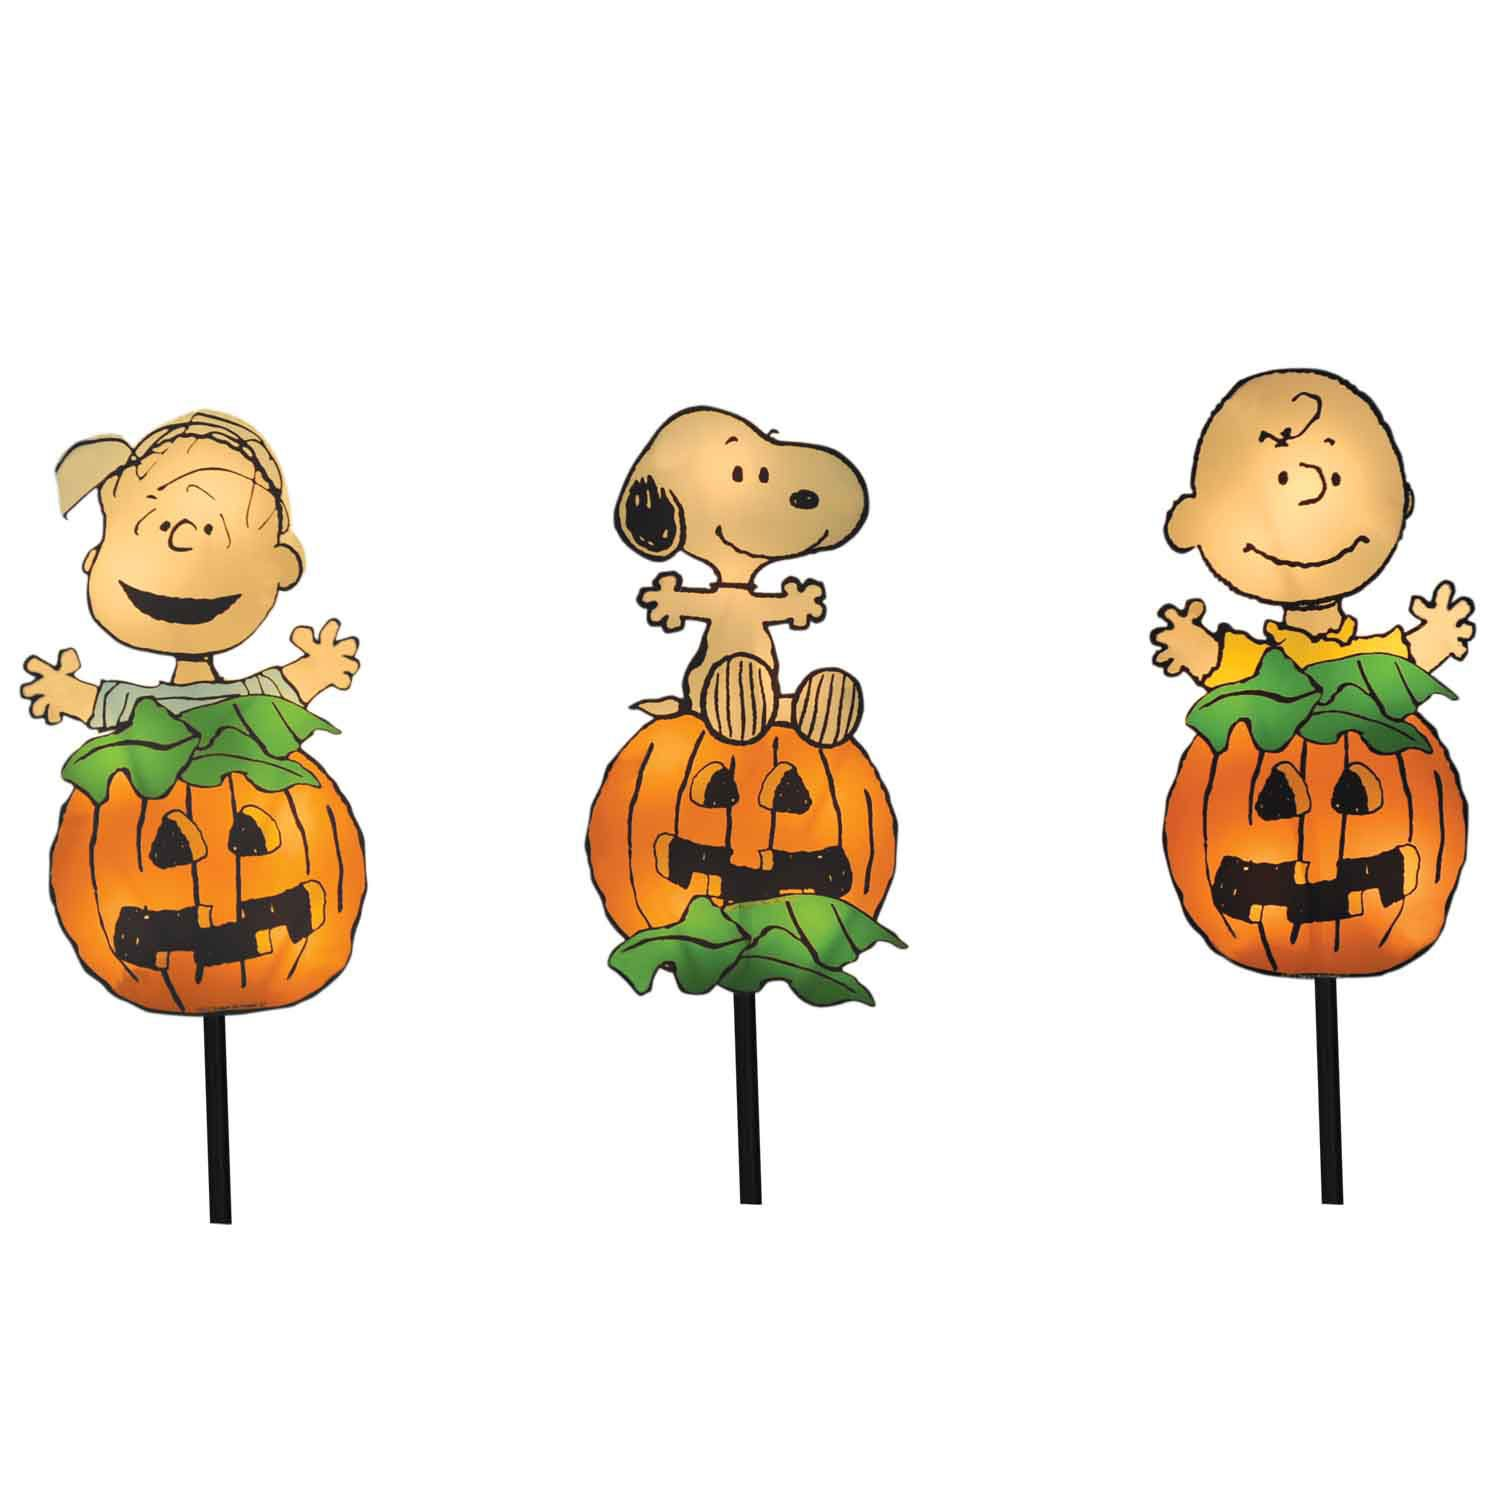 ProductWorks 8-Inch Pre-Lit Peanuts Great Pumpkin Gang Halloween Pathway Markers (Set of 3)